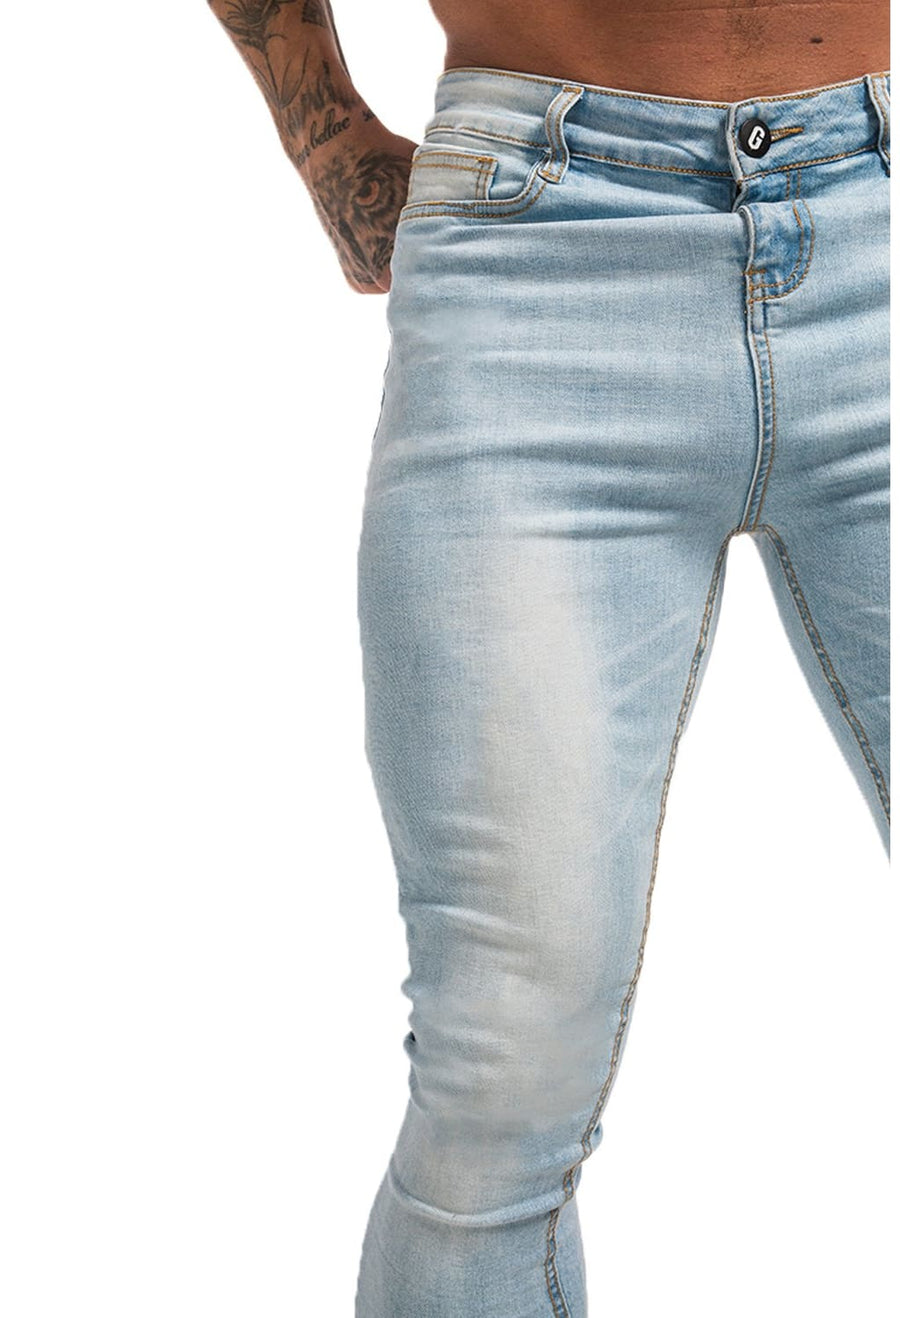 GINGTTO Mens Ice Blue Spray On Skinny Jeans Fashion Stretch Jeans For Men High Waisted zm32 - Skinny Jeans